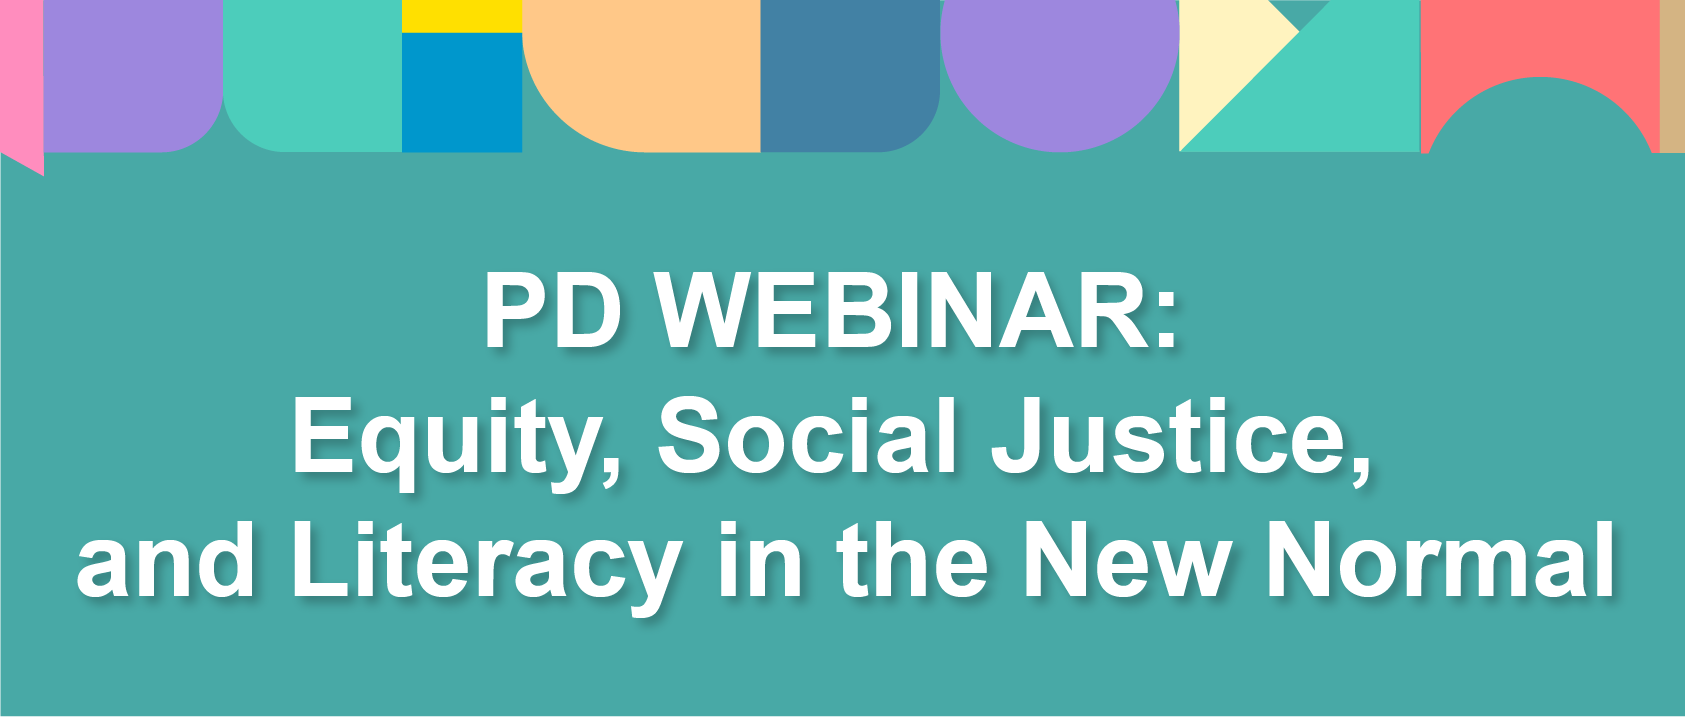 PD WEBINAR: Equity, Social Justice, and Literacy in the New Normal